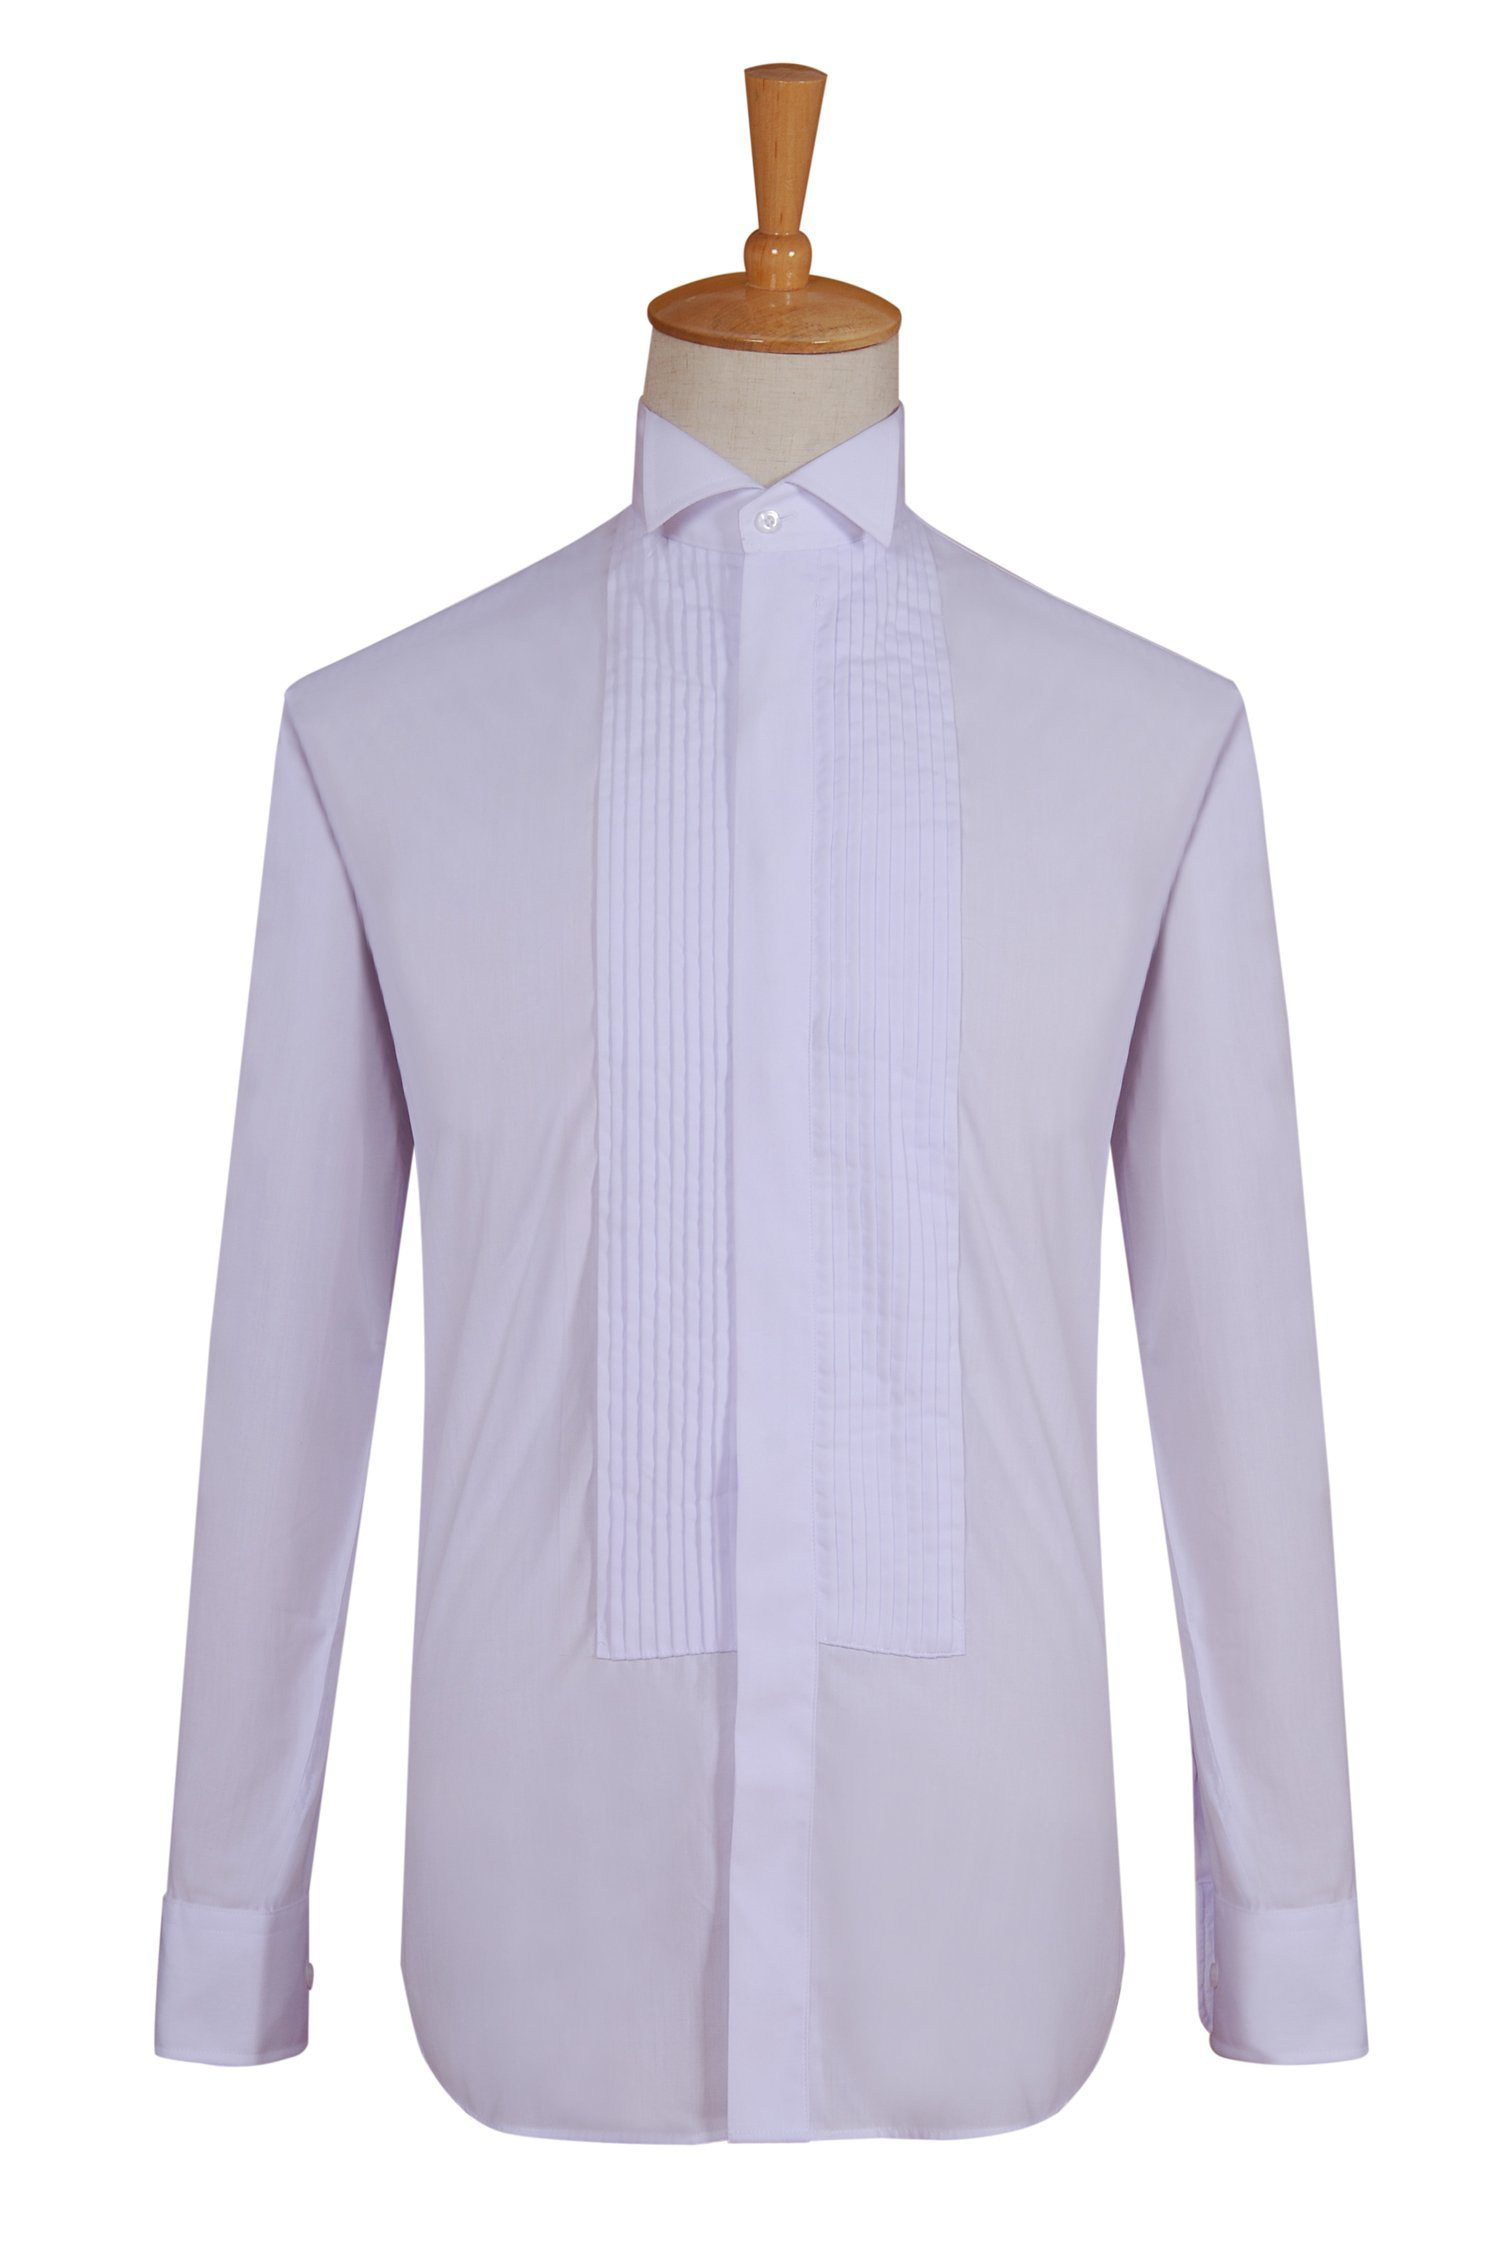 Poly//Cotton 1//4 Inch Wing Collar White Formal Shirts Mens Tux Shirt